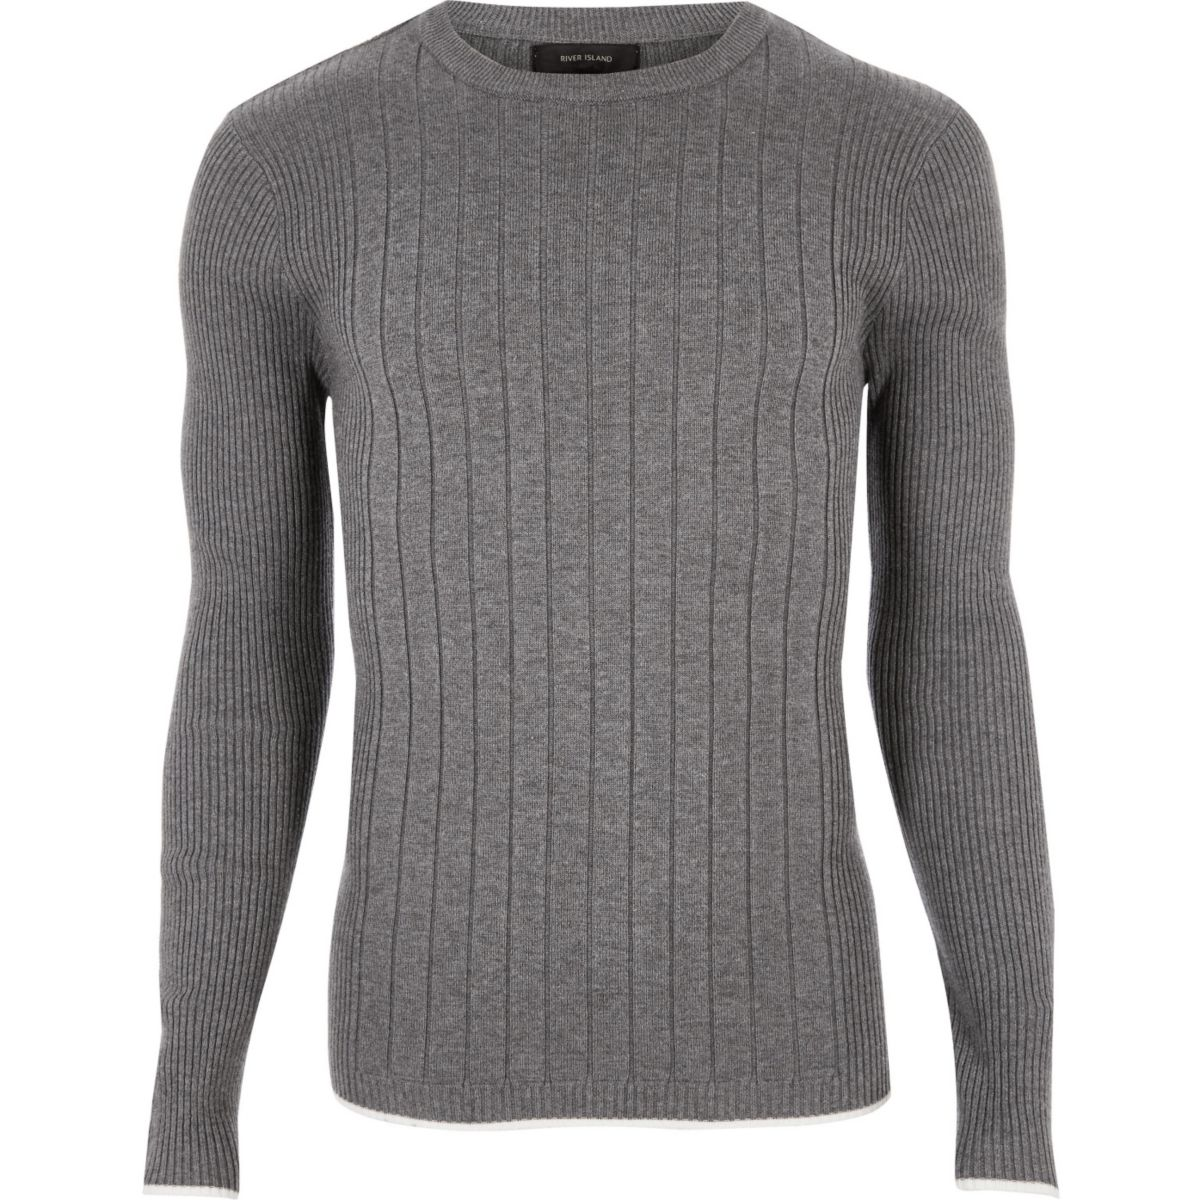 Grey mixed rib muscle fit jumper